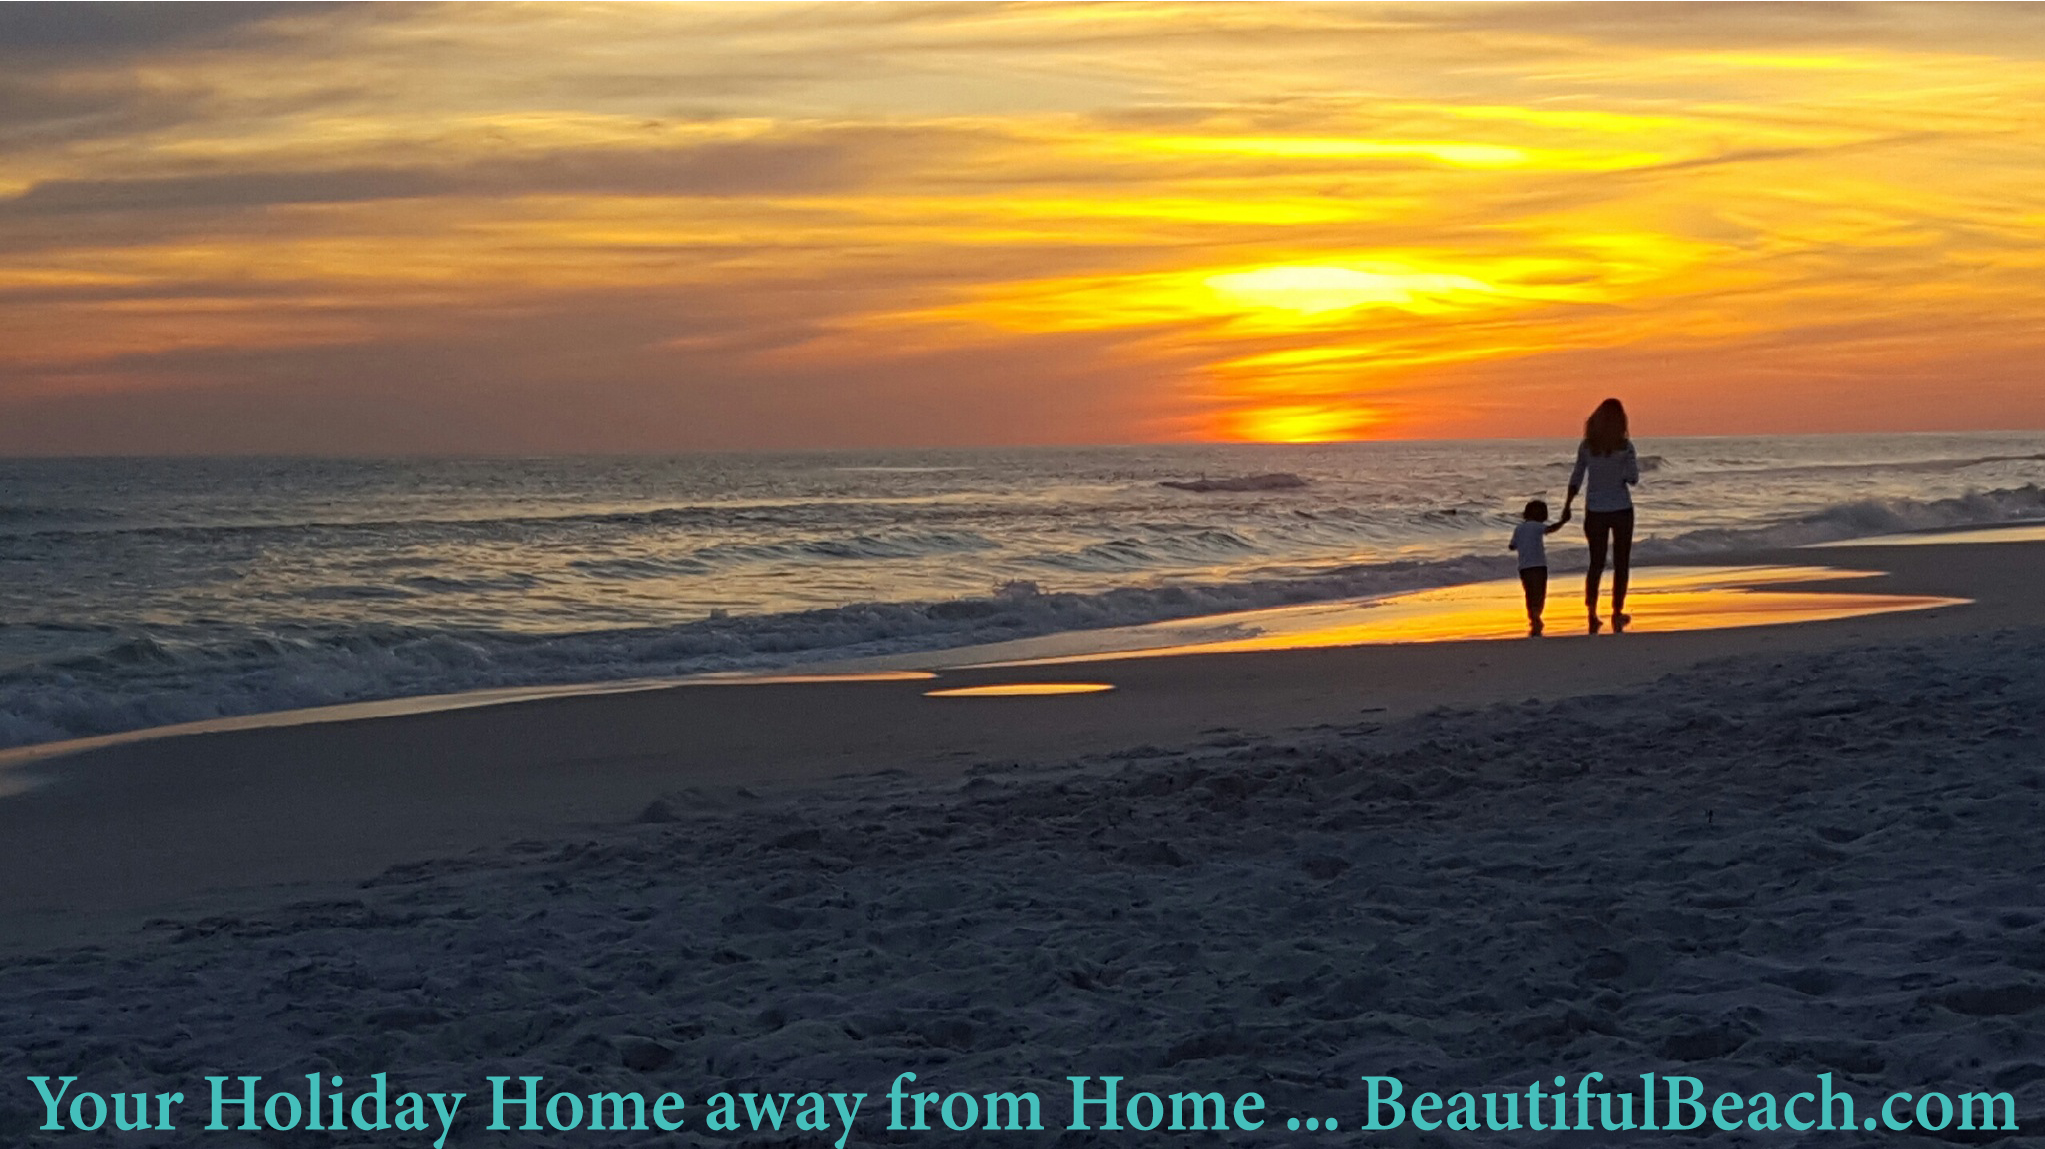 Your holiday home away from home is waiting on our beautiful beaches of NW Florida